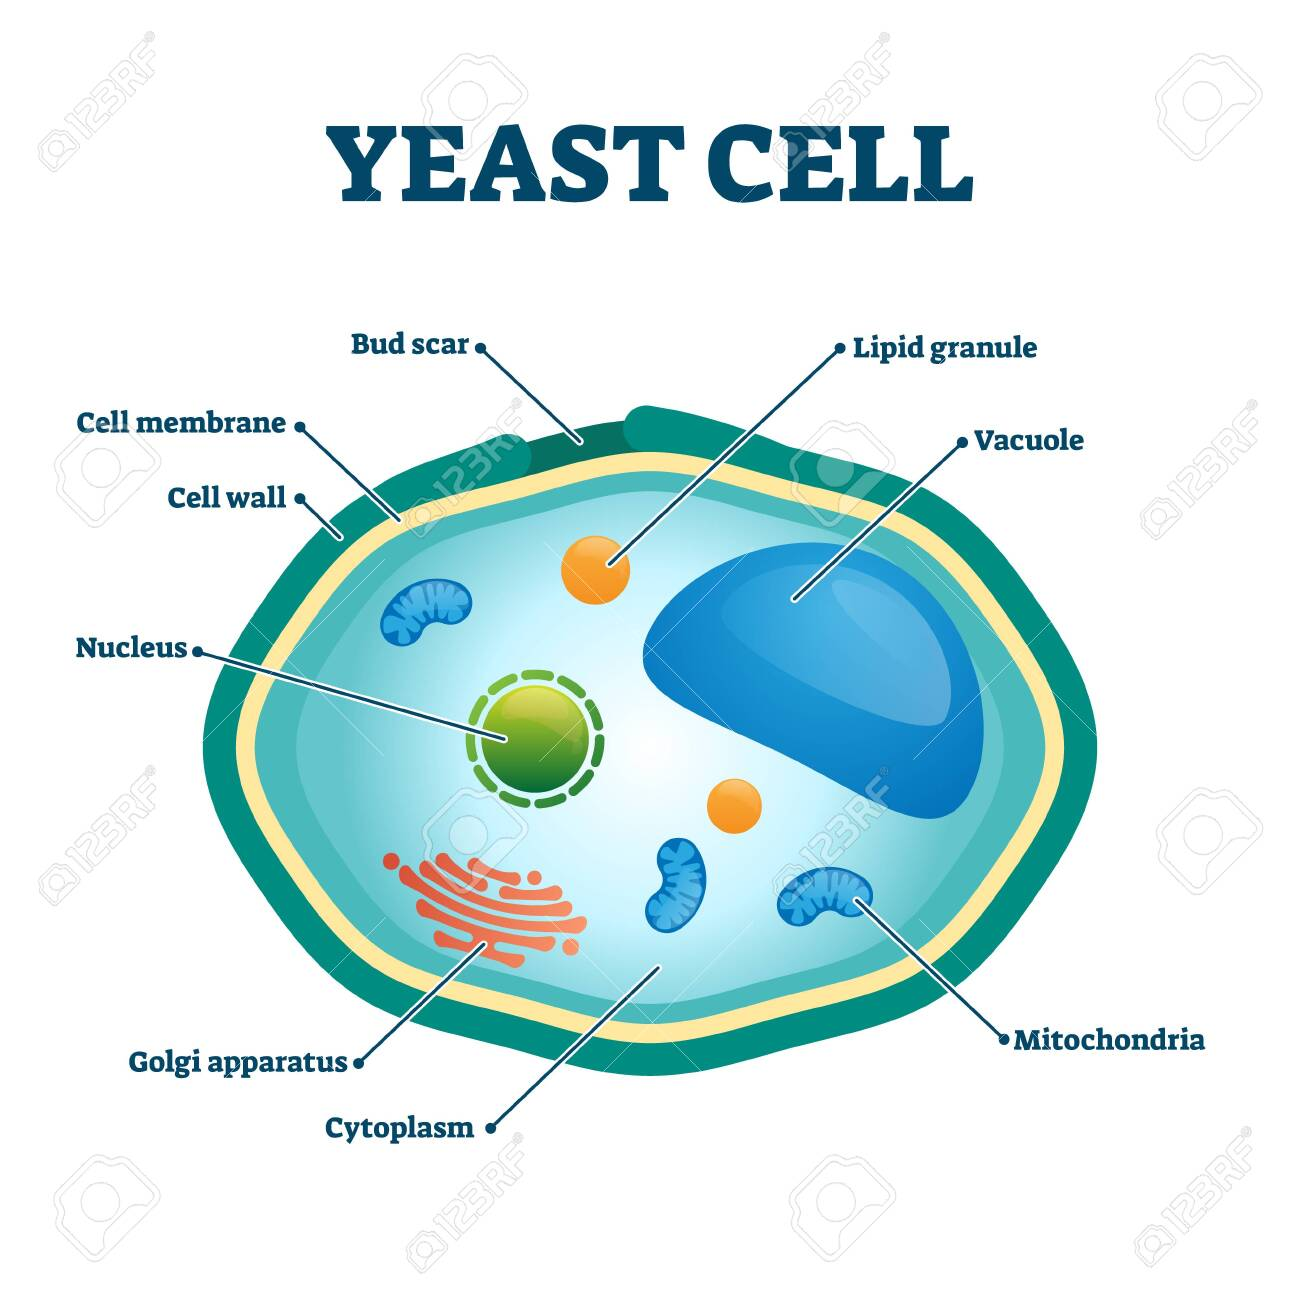 Yeast cell vector illustration. Labeled fungus microorganism closeup structure diagram. Biological scheme with educational internal parts titles. Single celled natural fermentation process ingredient. - 137154733